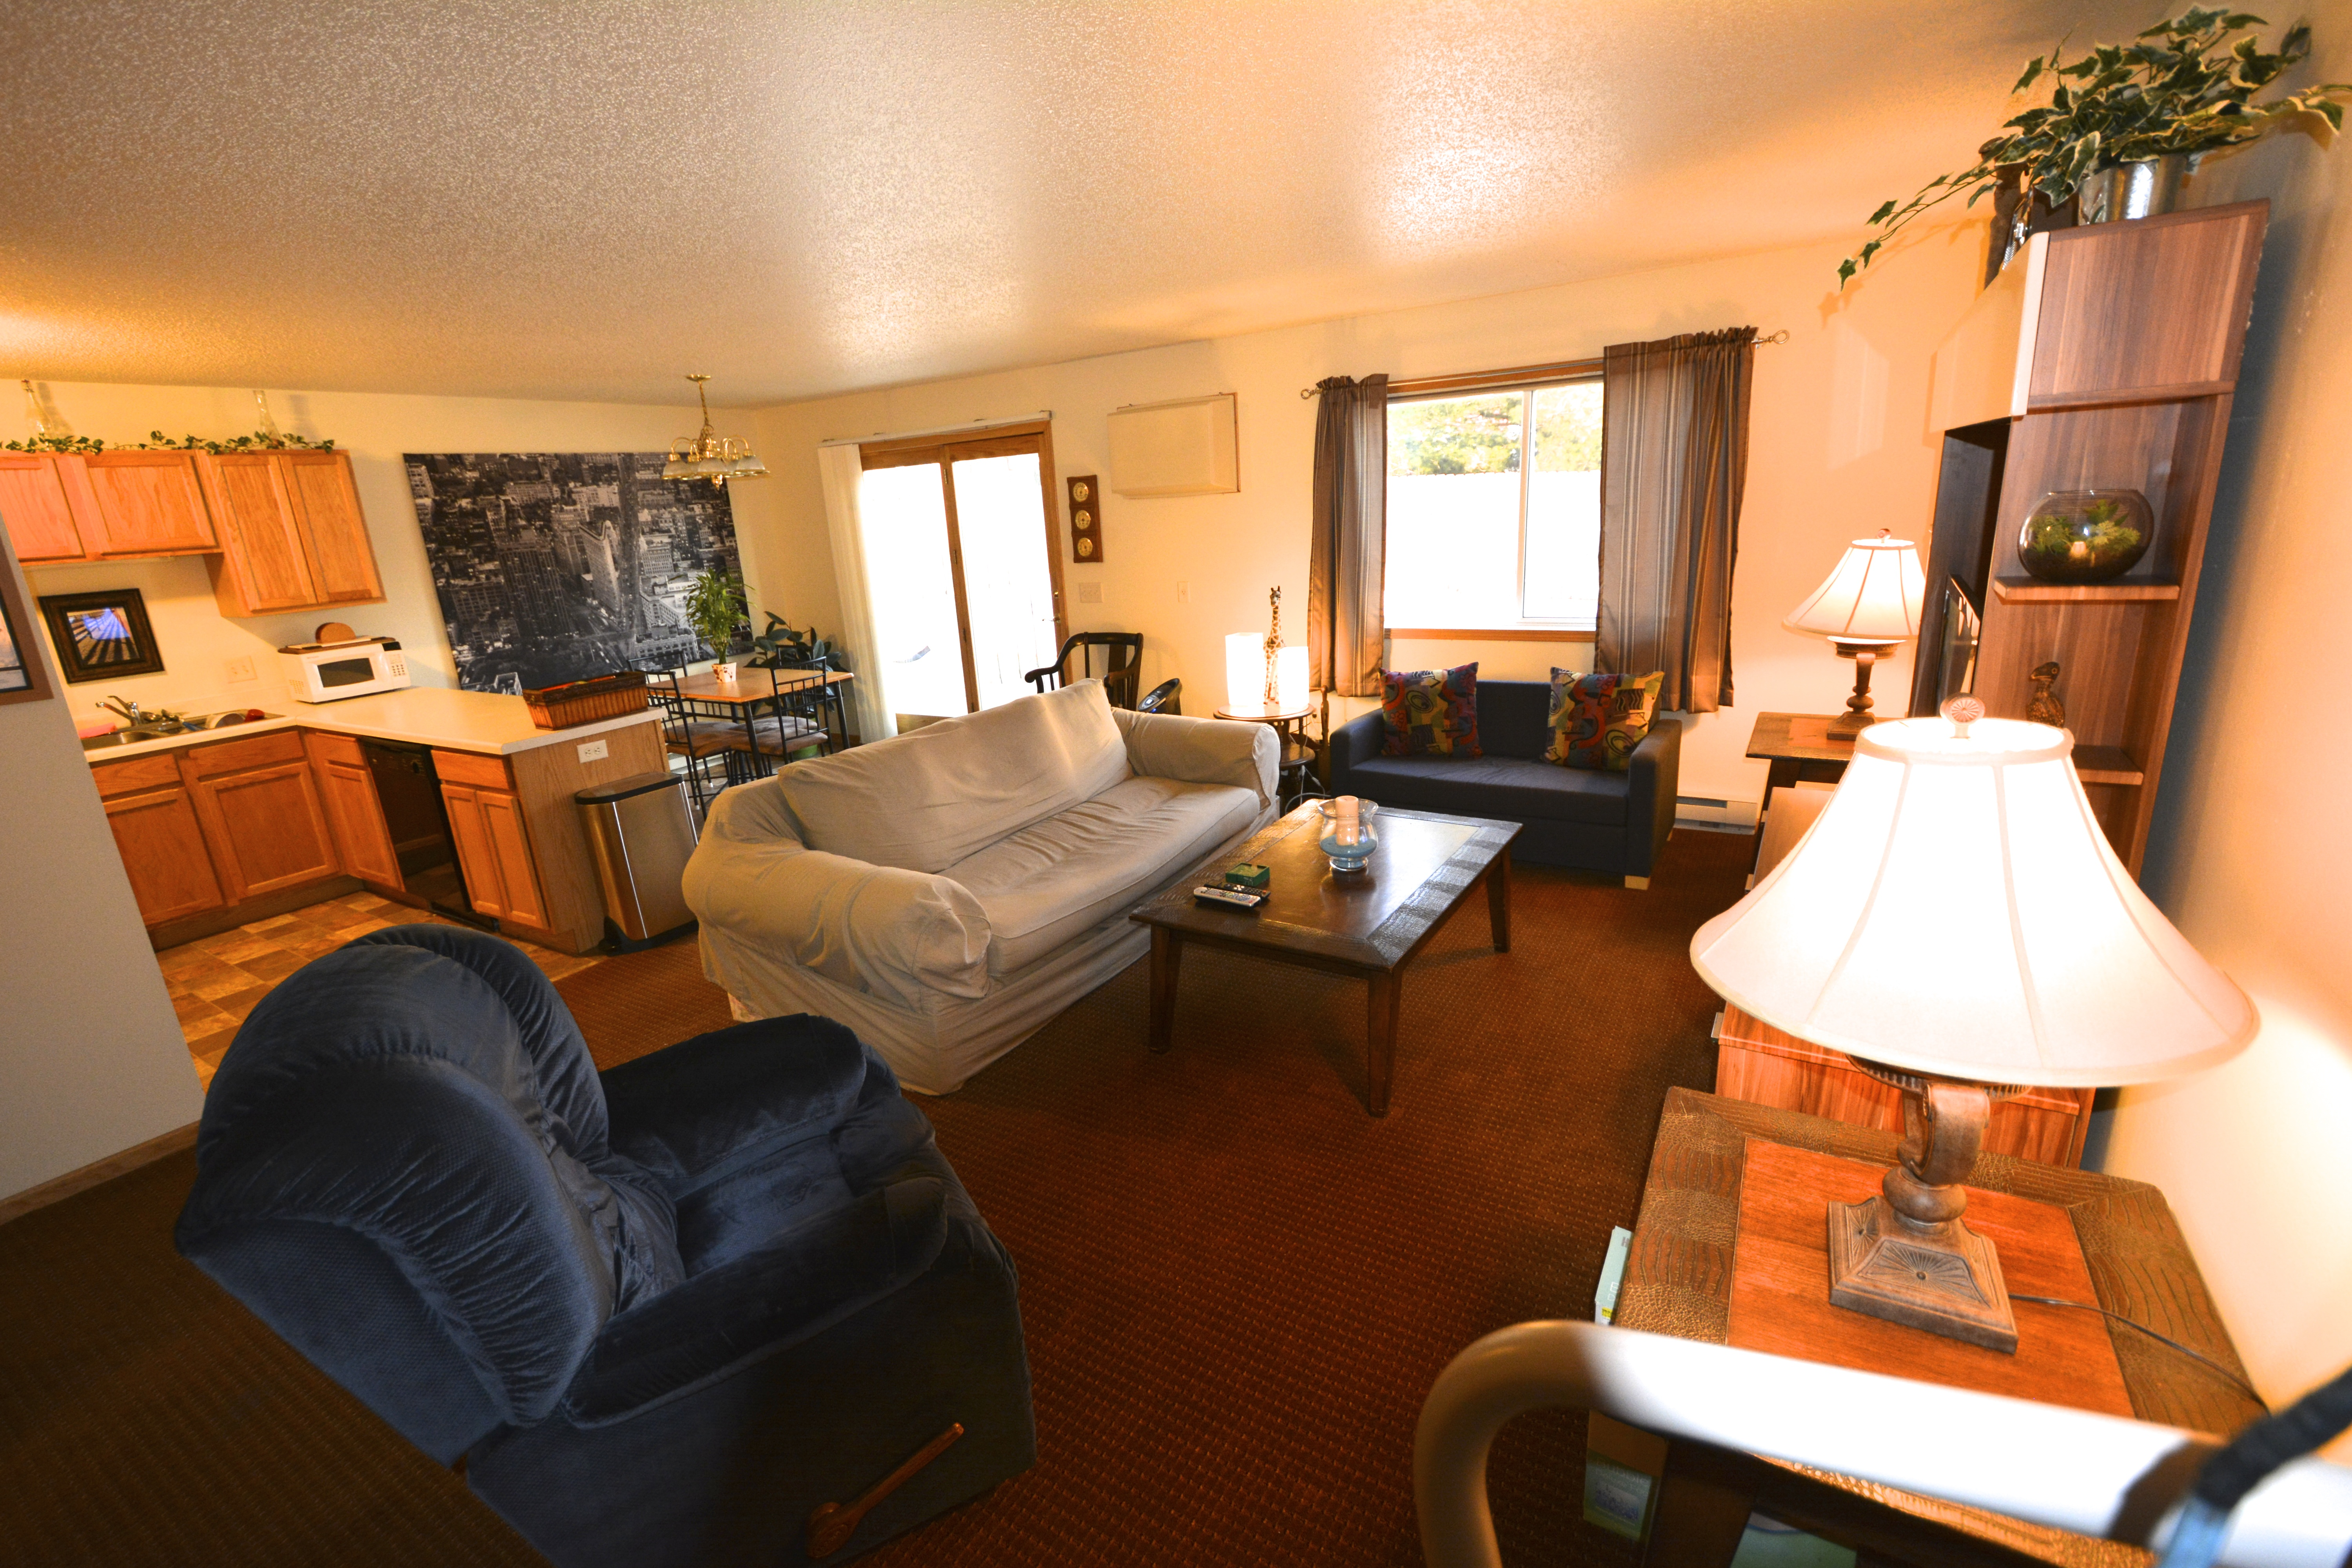 Living Area with Lots of Space  3 bedroom rental. Apartment for Rent in Menomonie WI Student Rental UW Stout